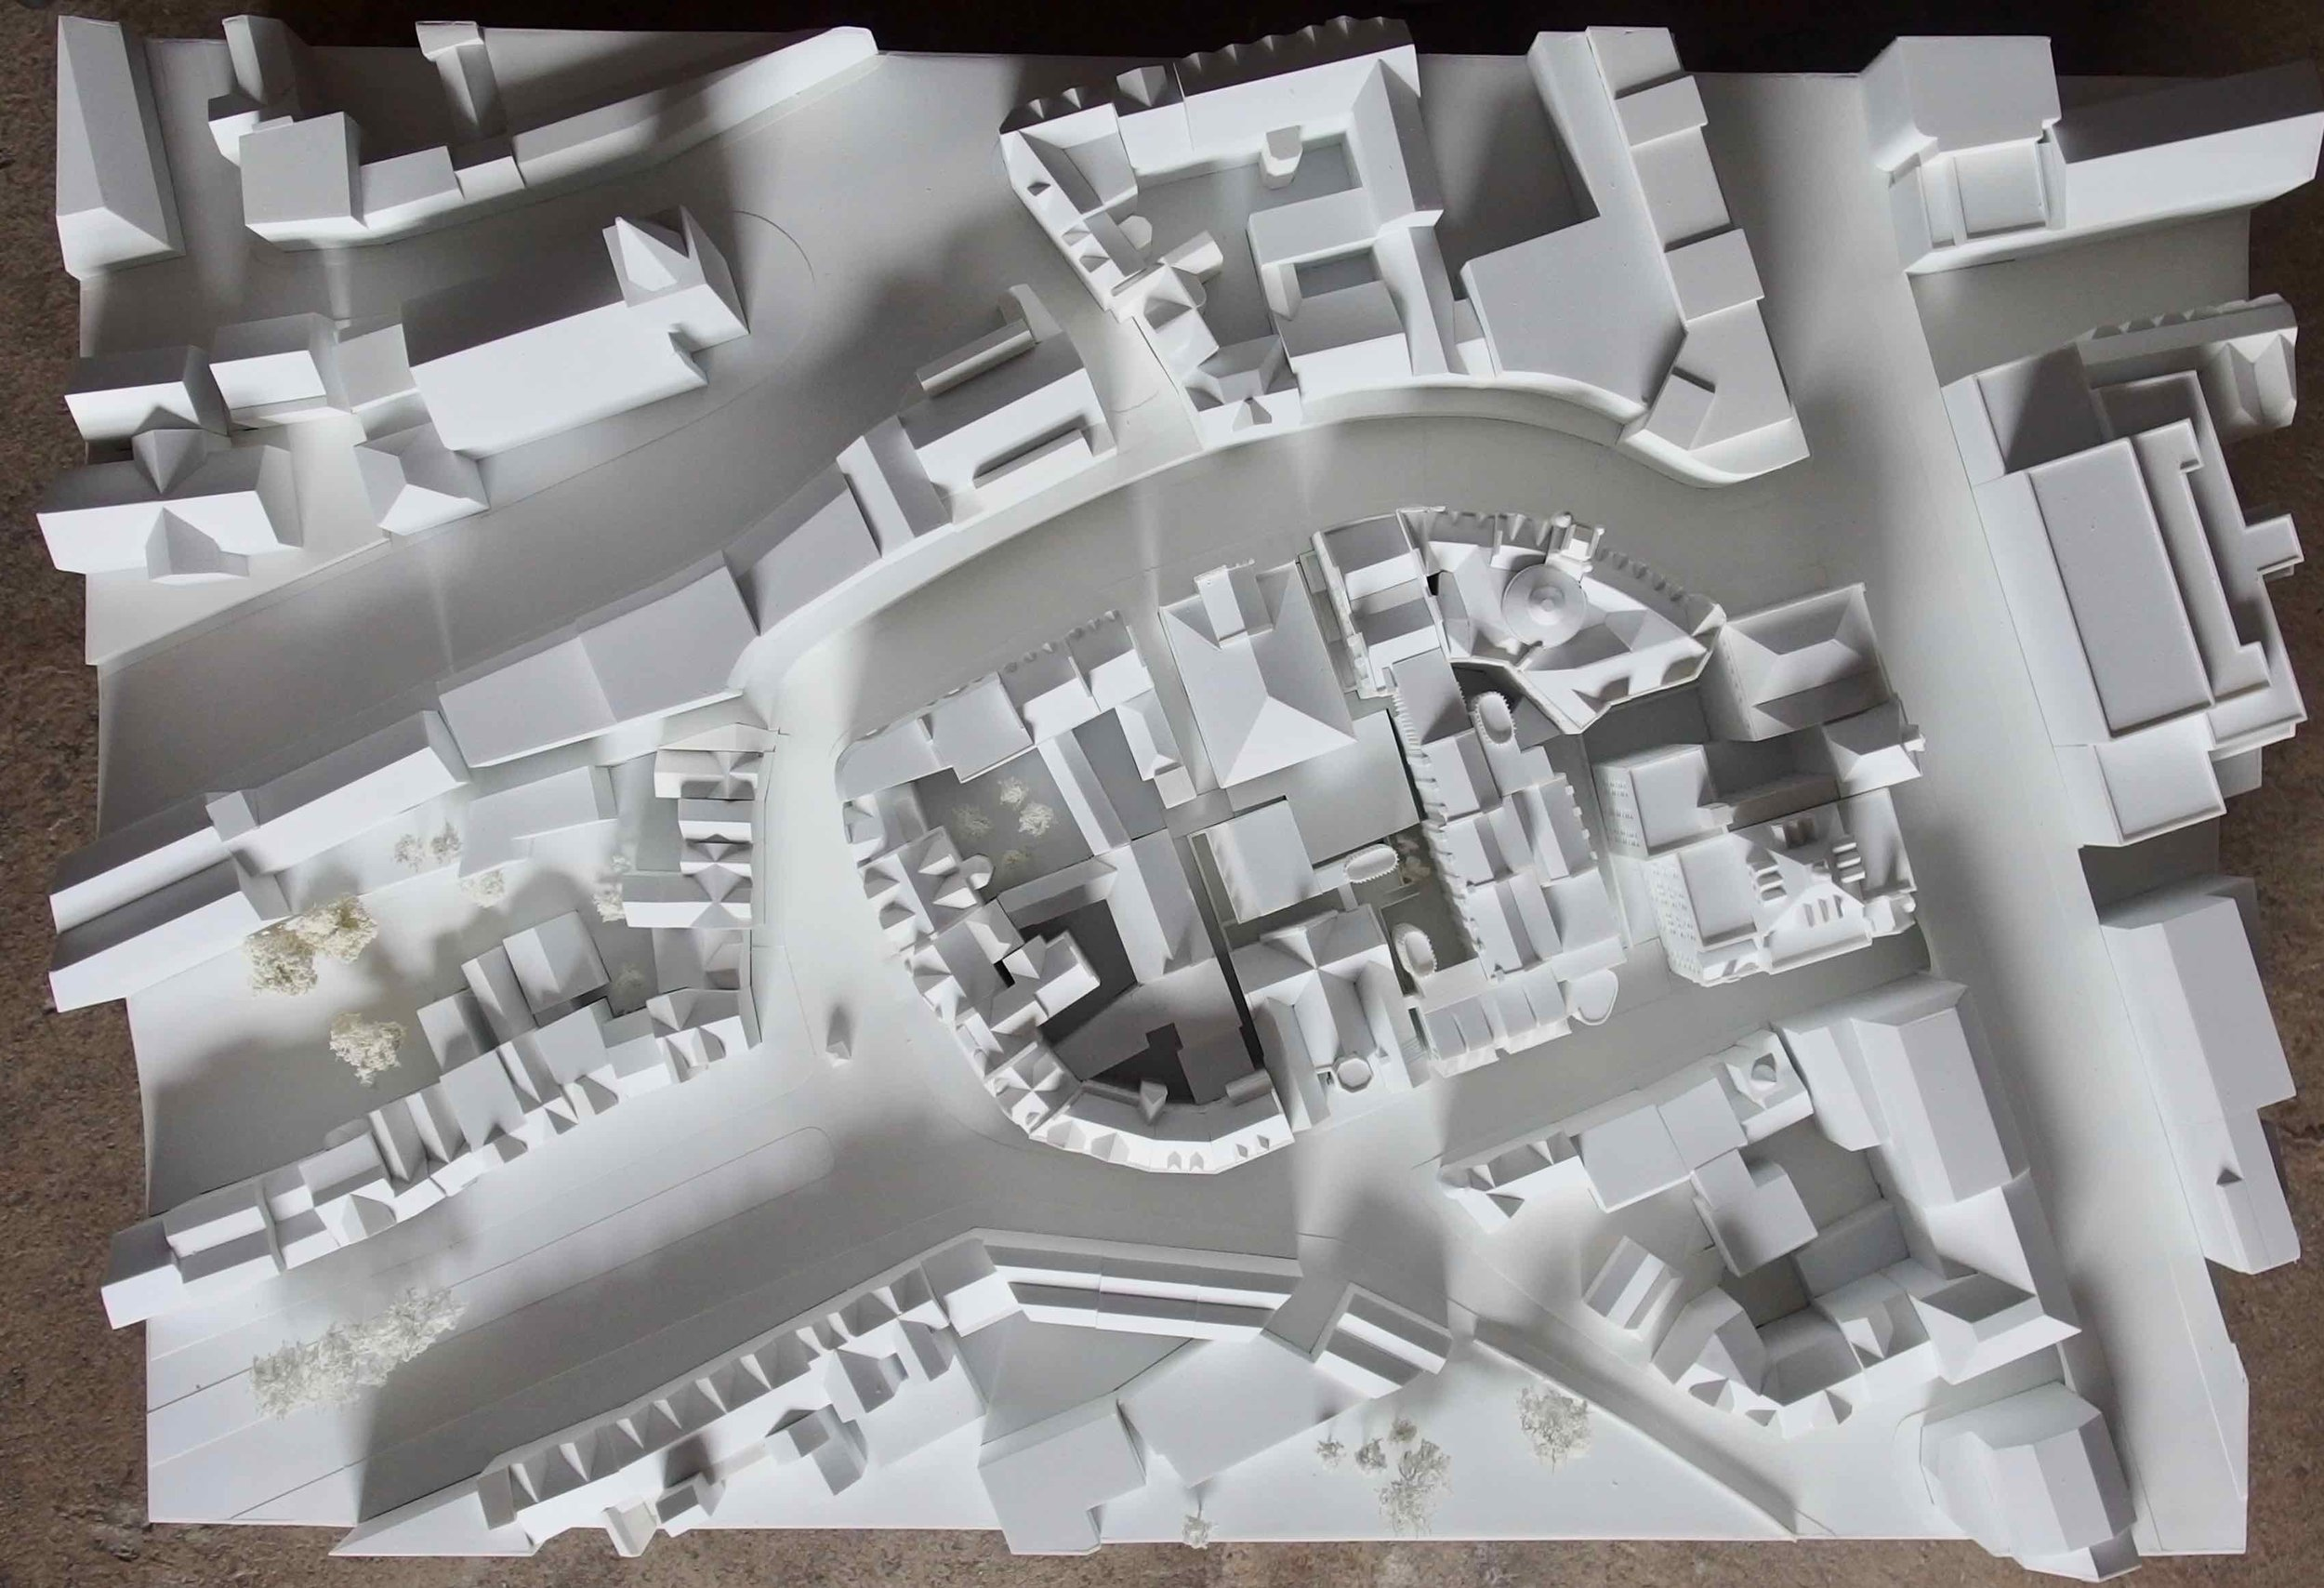 Above: Google Maps screenshot of Edinburgh Victoria Street and Cowgate. Below: Finch & Fouracre model of the area, for a hotel development in the centre of the model. For ICA Architects, 2016.